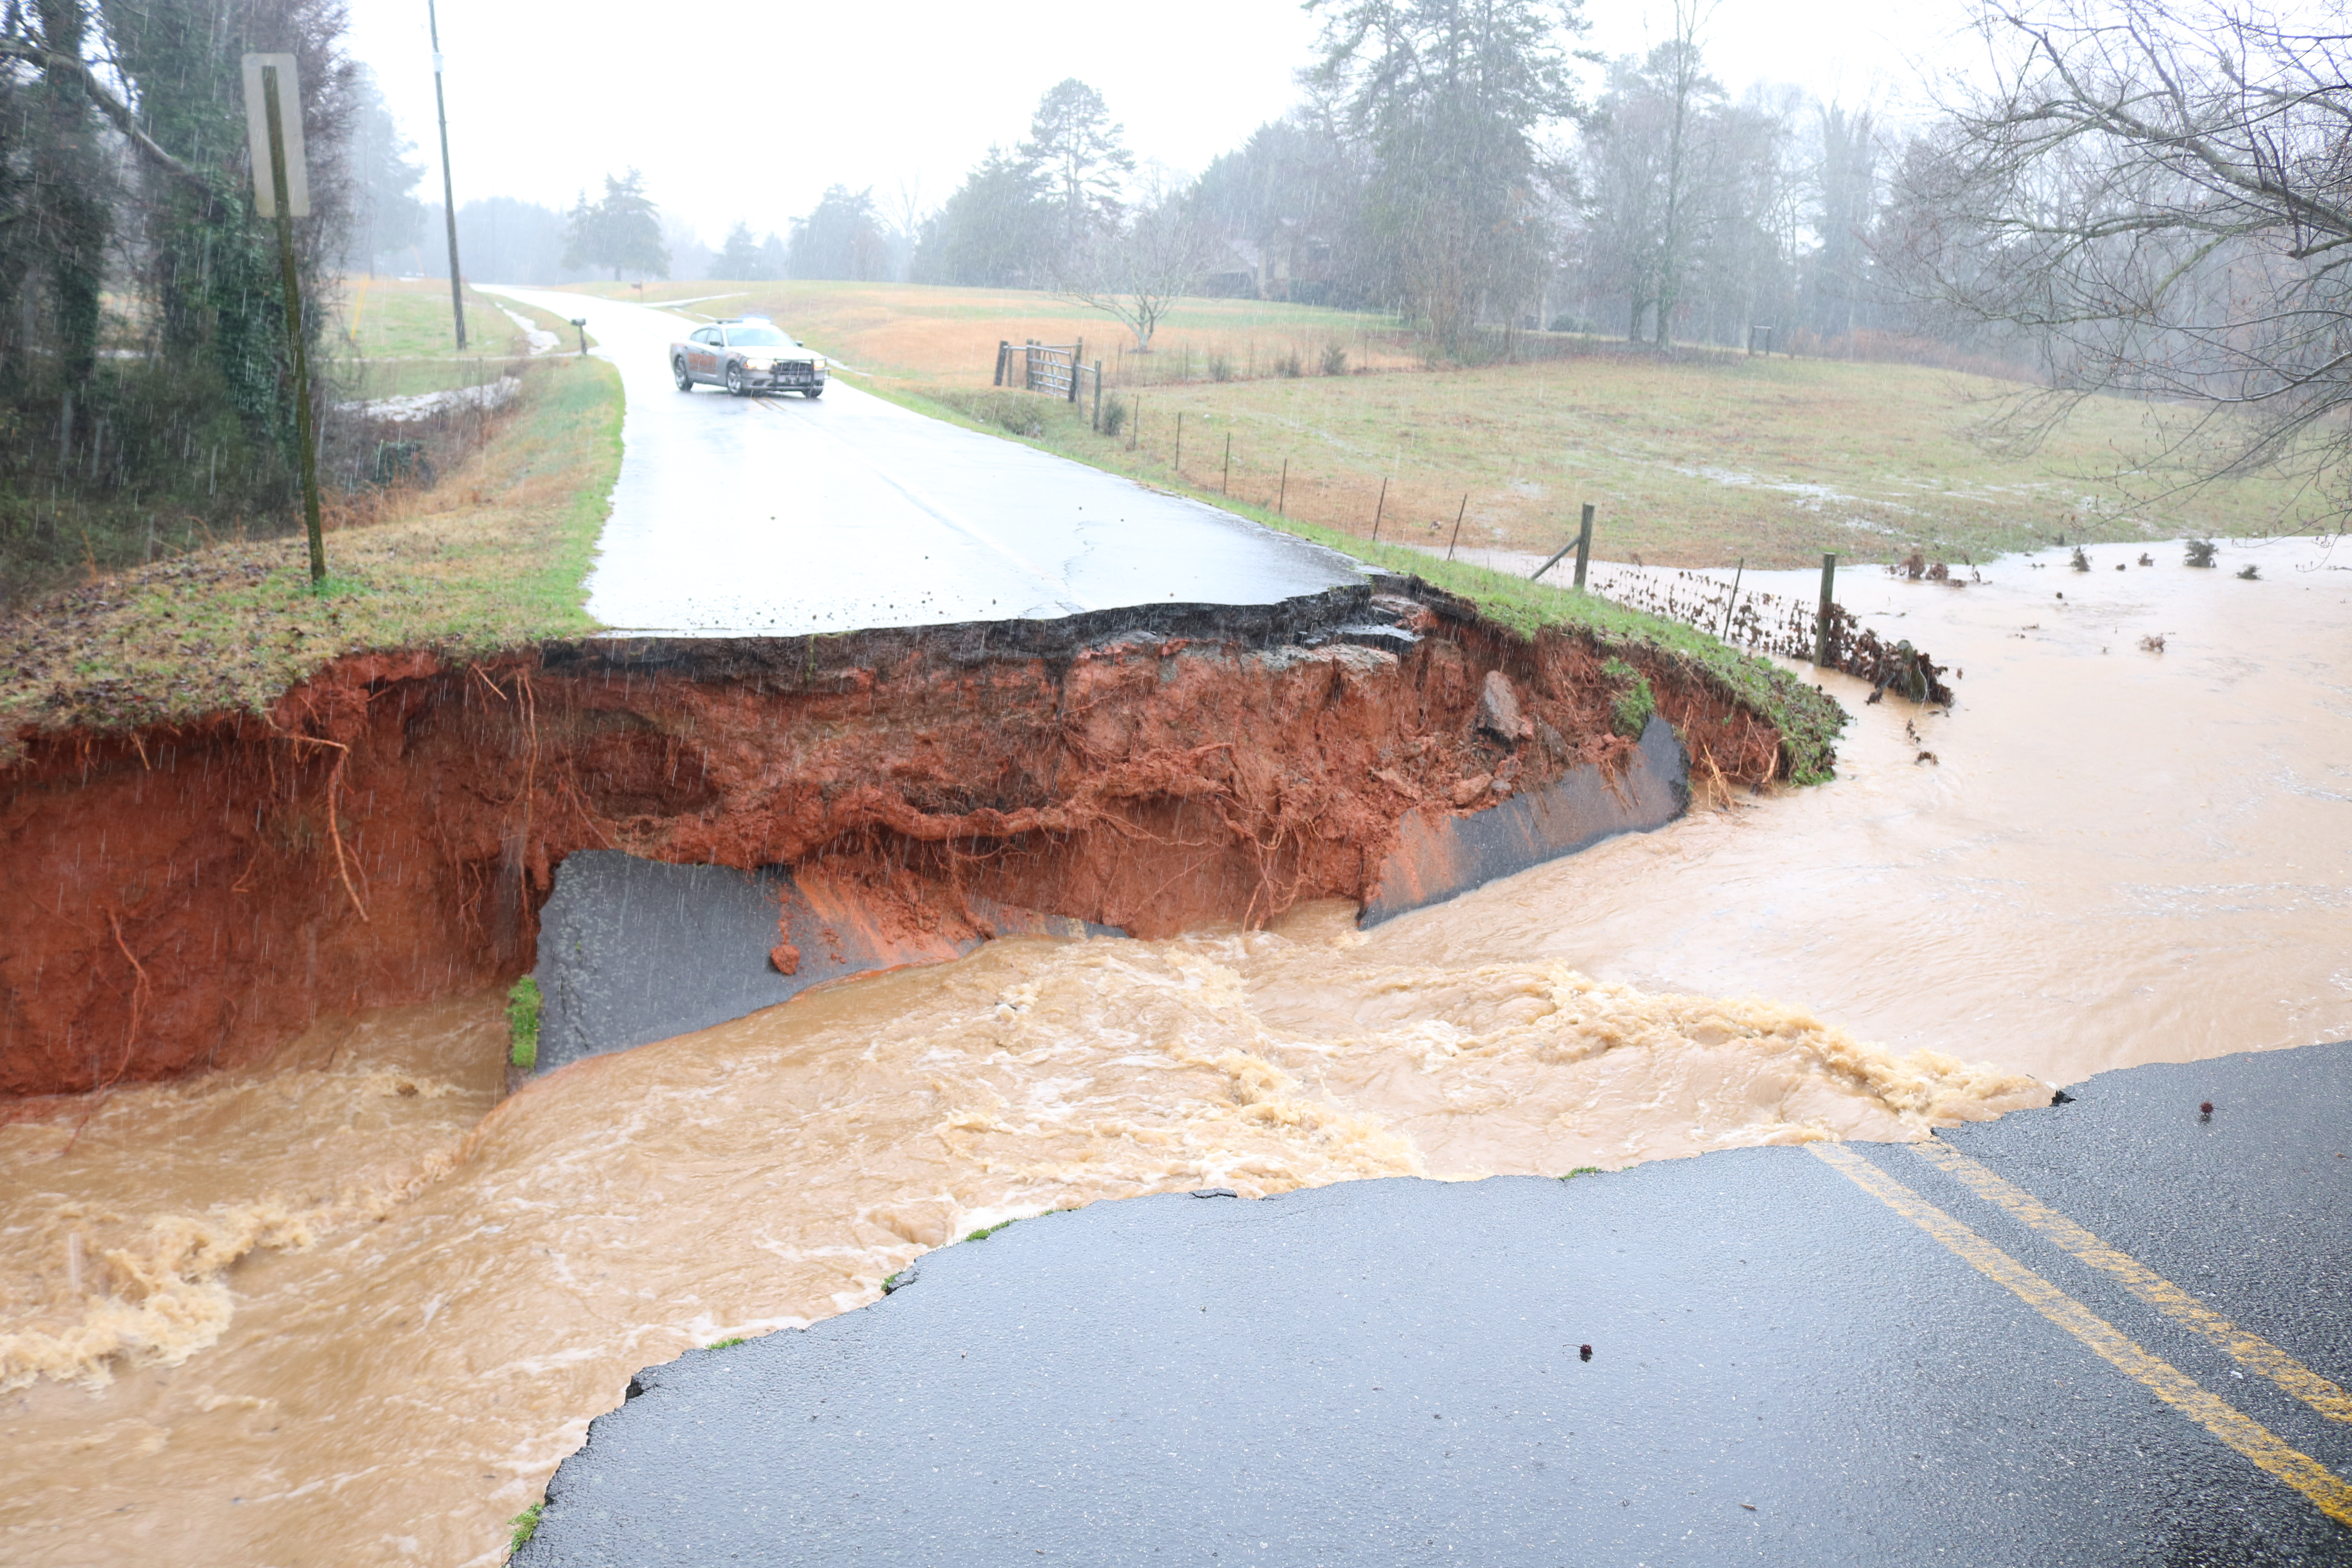 Sunshot by Grayson Williams - A flash flood created a temporary raging river and washed out Deer Run Lane on Thursday, Feb. 6, when torrential downpours caused flooding around Hart County.